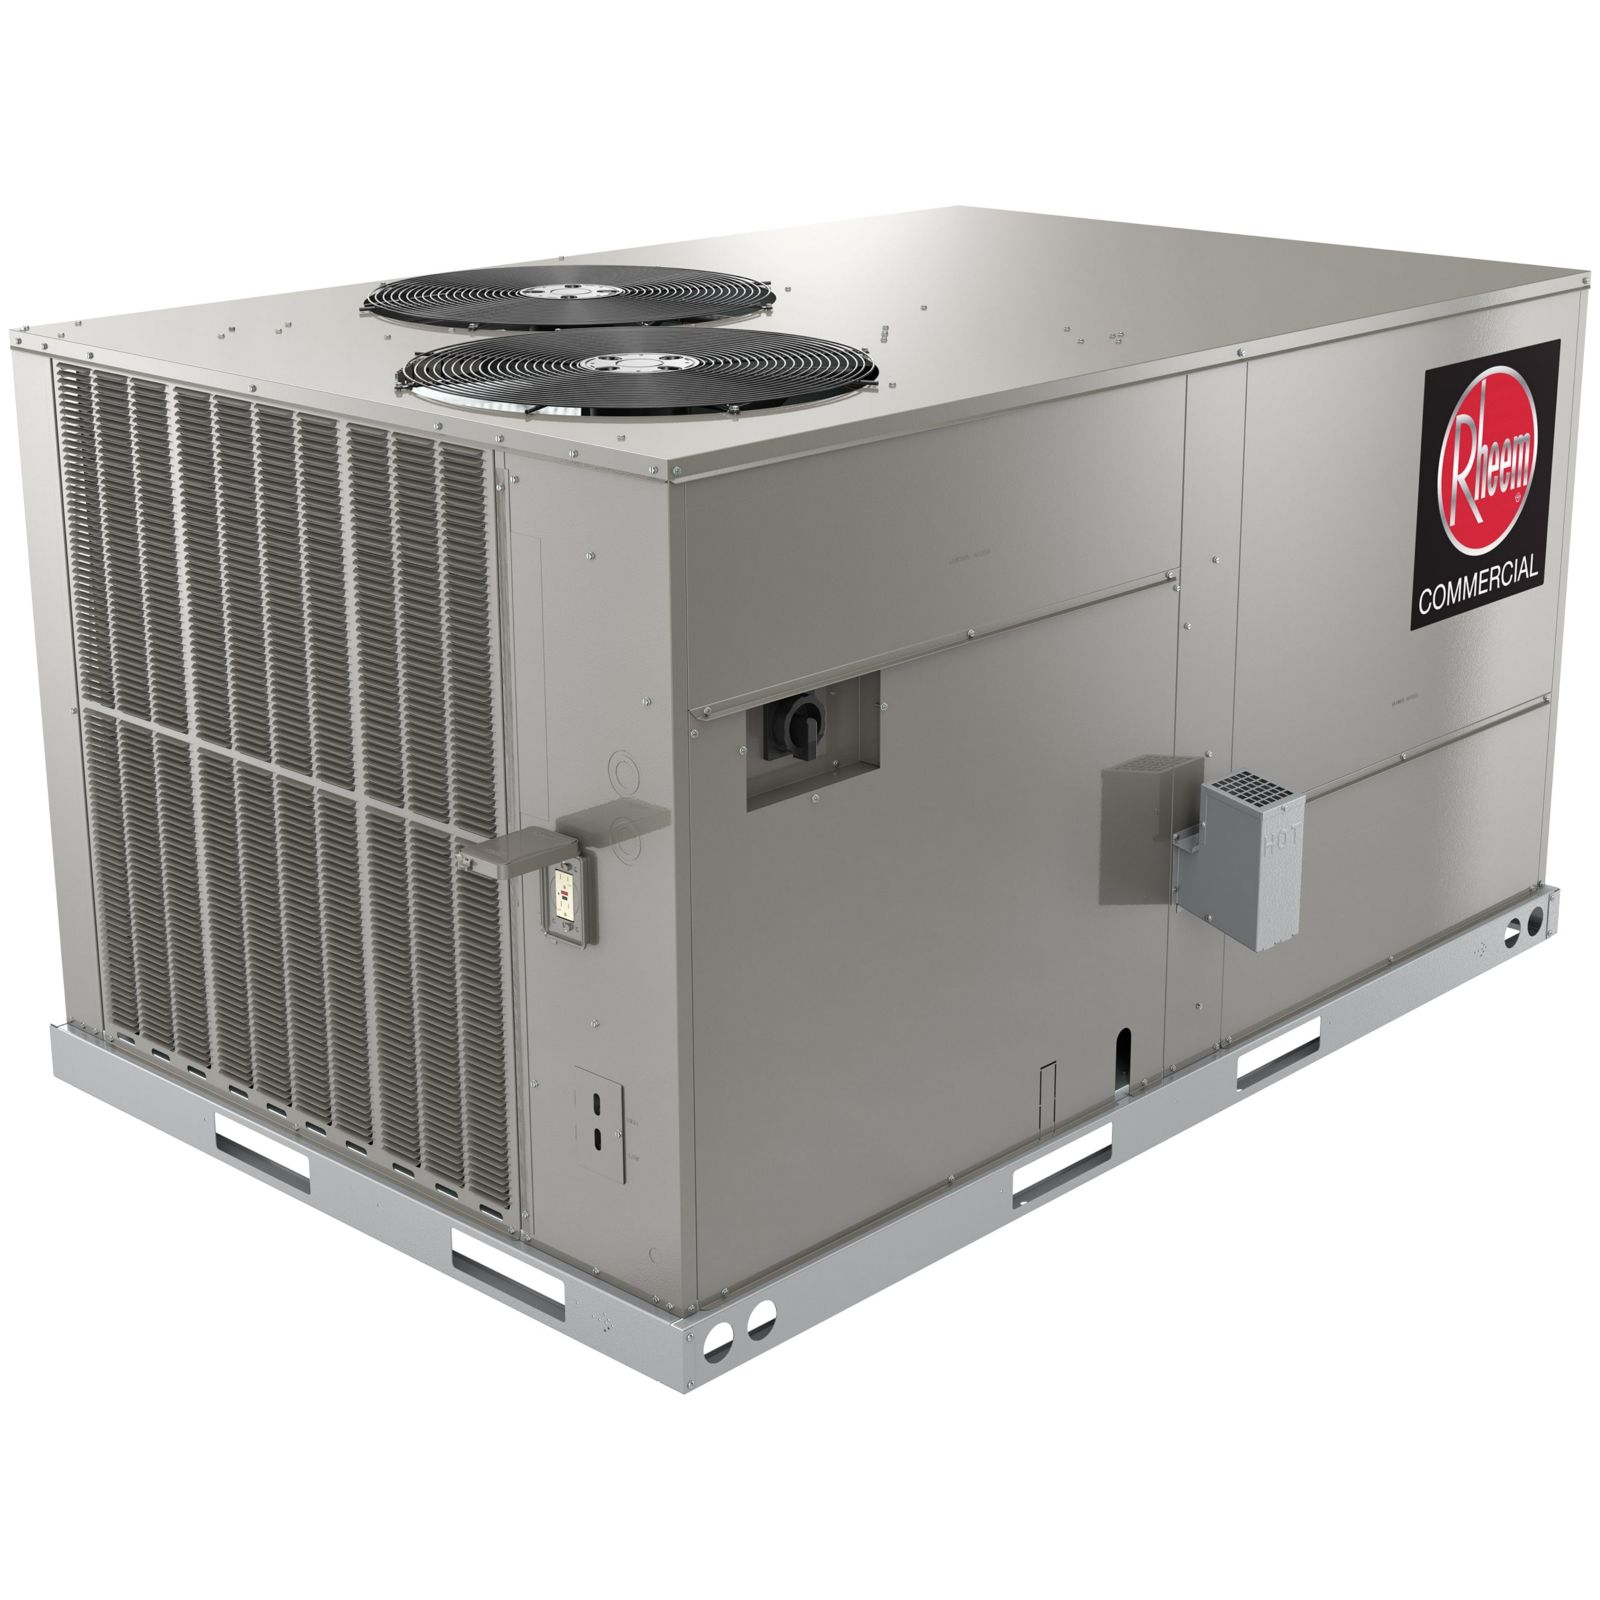 Rheem RGEDZR090ACA152AAAA0 - Commercial Classic® Series 7 1/2 Ton Package  Gas/Electric Unit, R410A, 208-230/3/60 --- 5589365565245357Gemaire